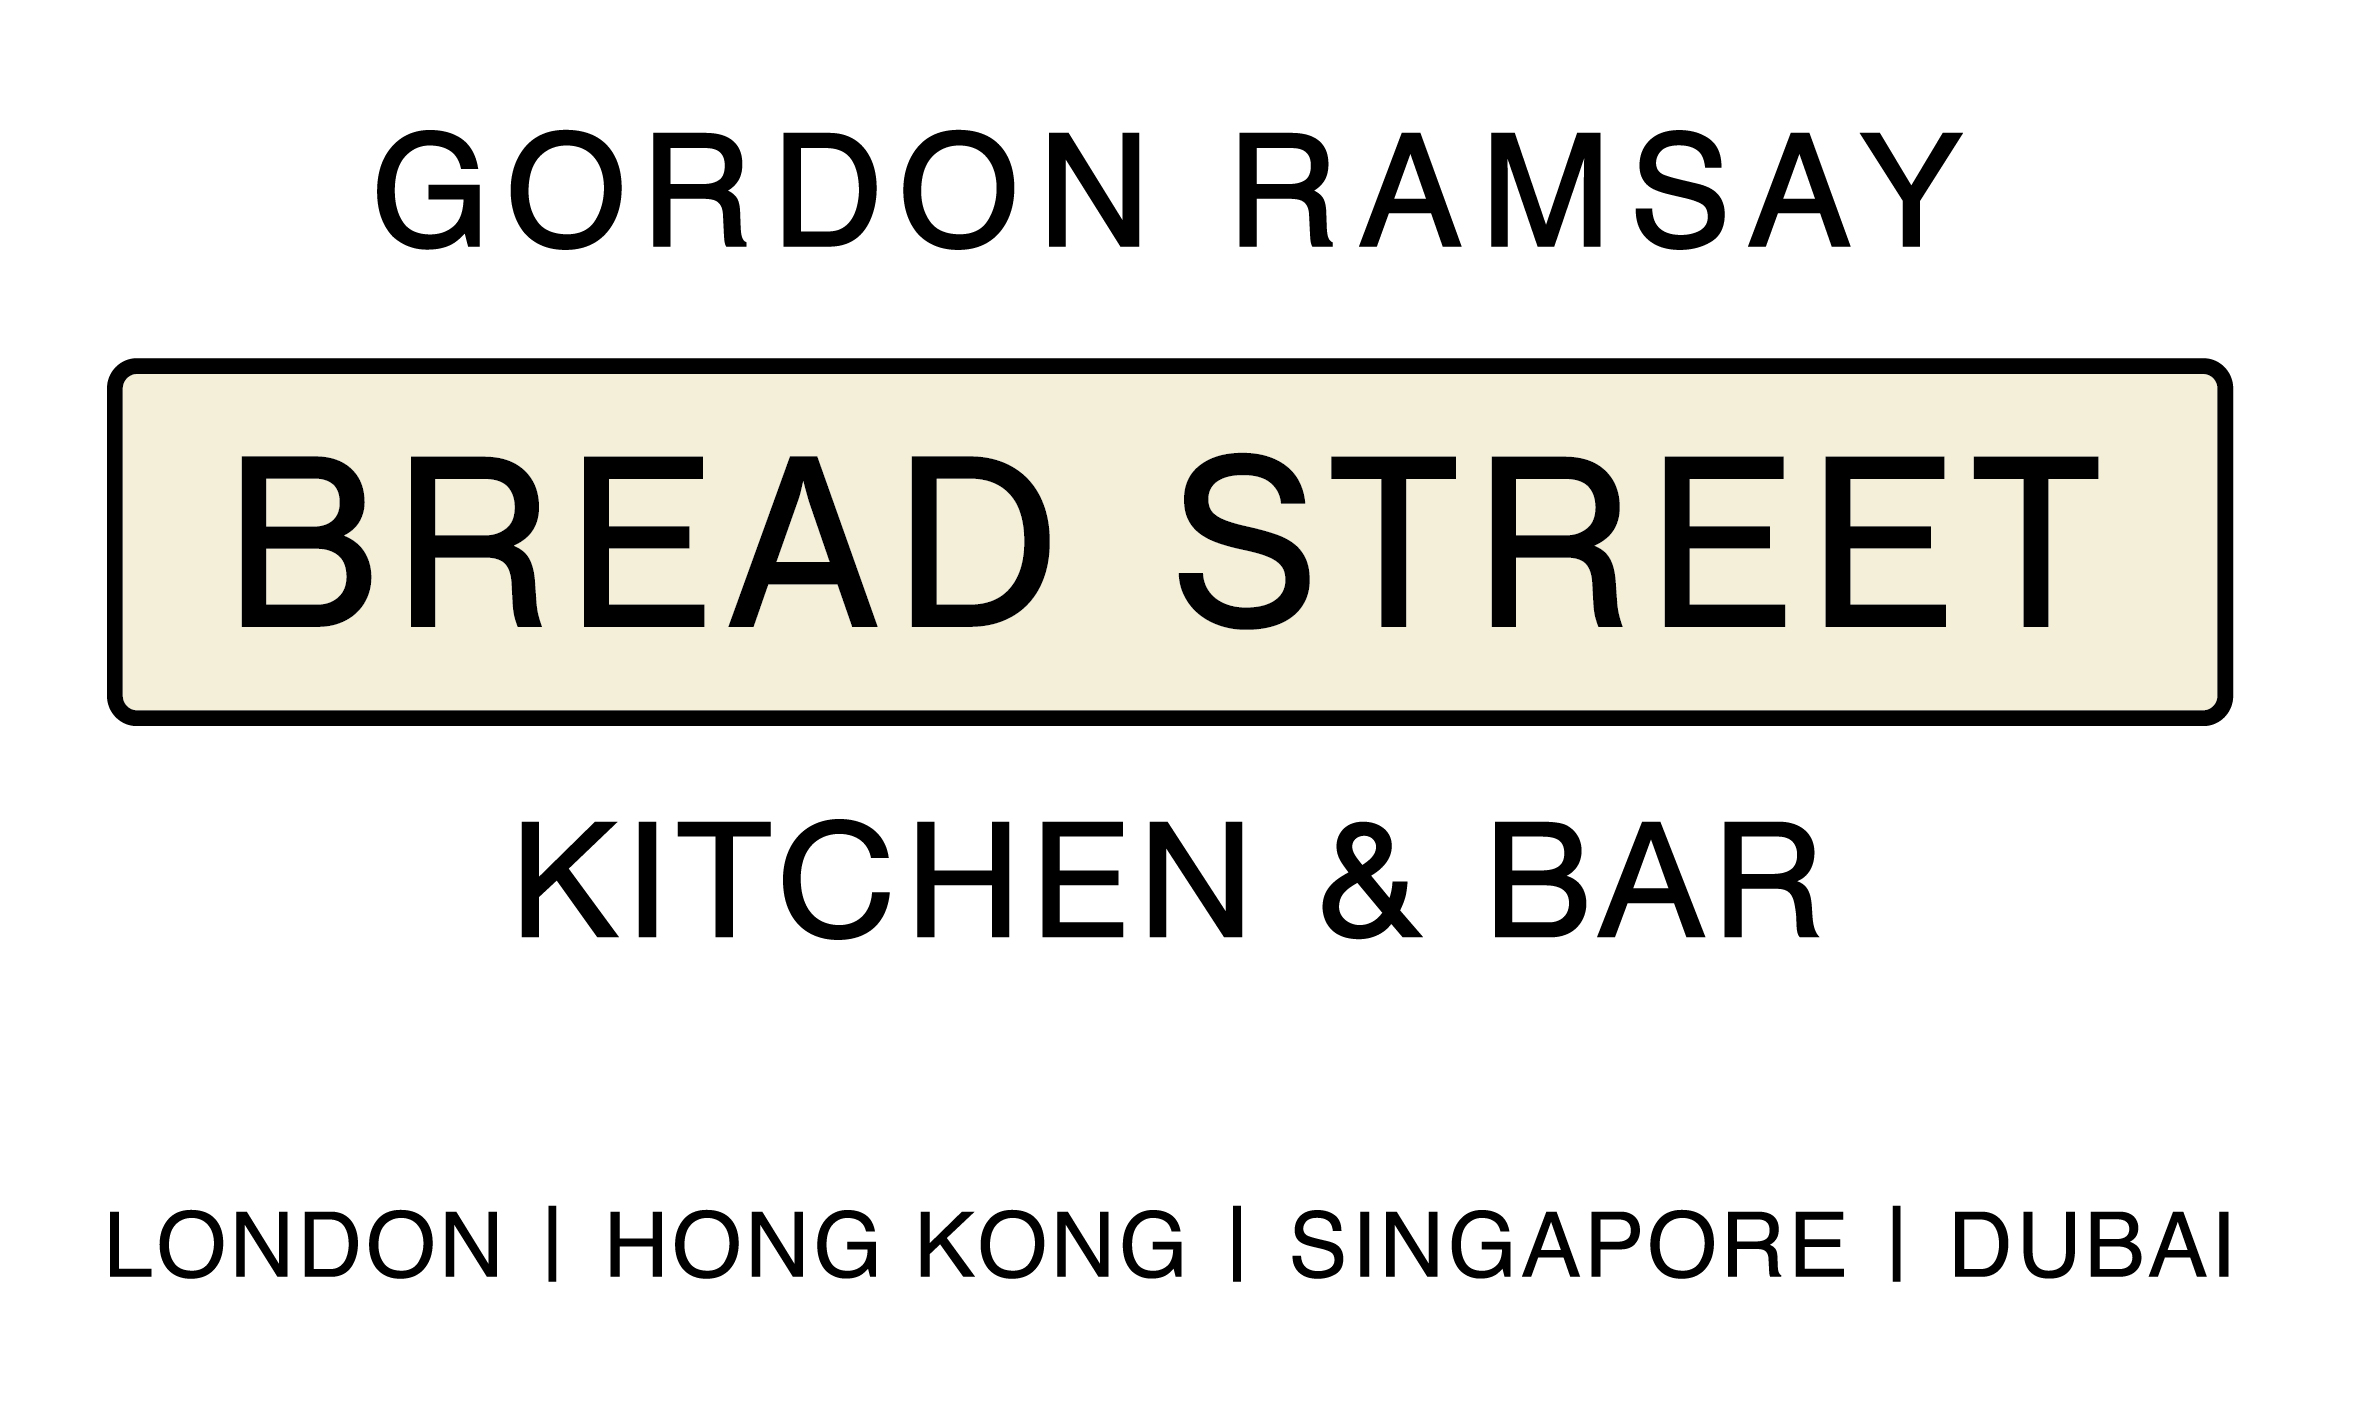 Gordon Ramsay Bread Street Kitchen and Bar